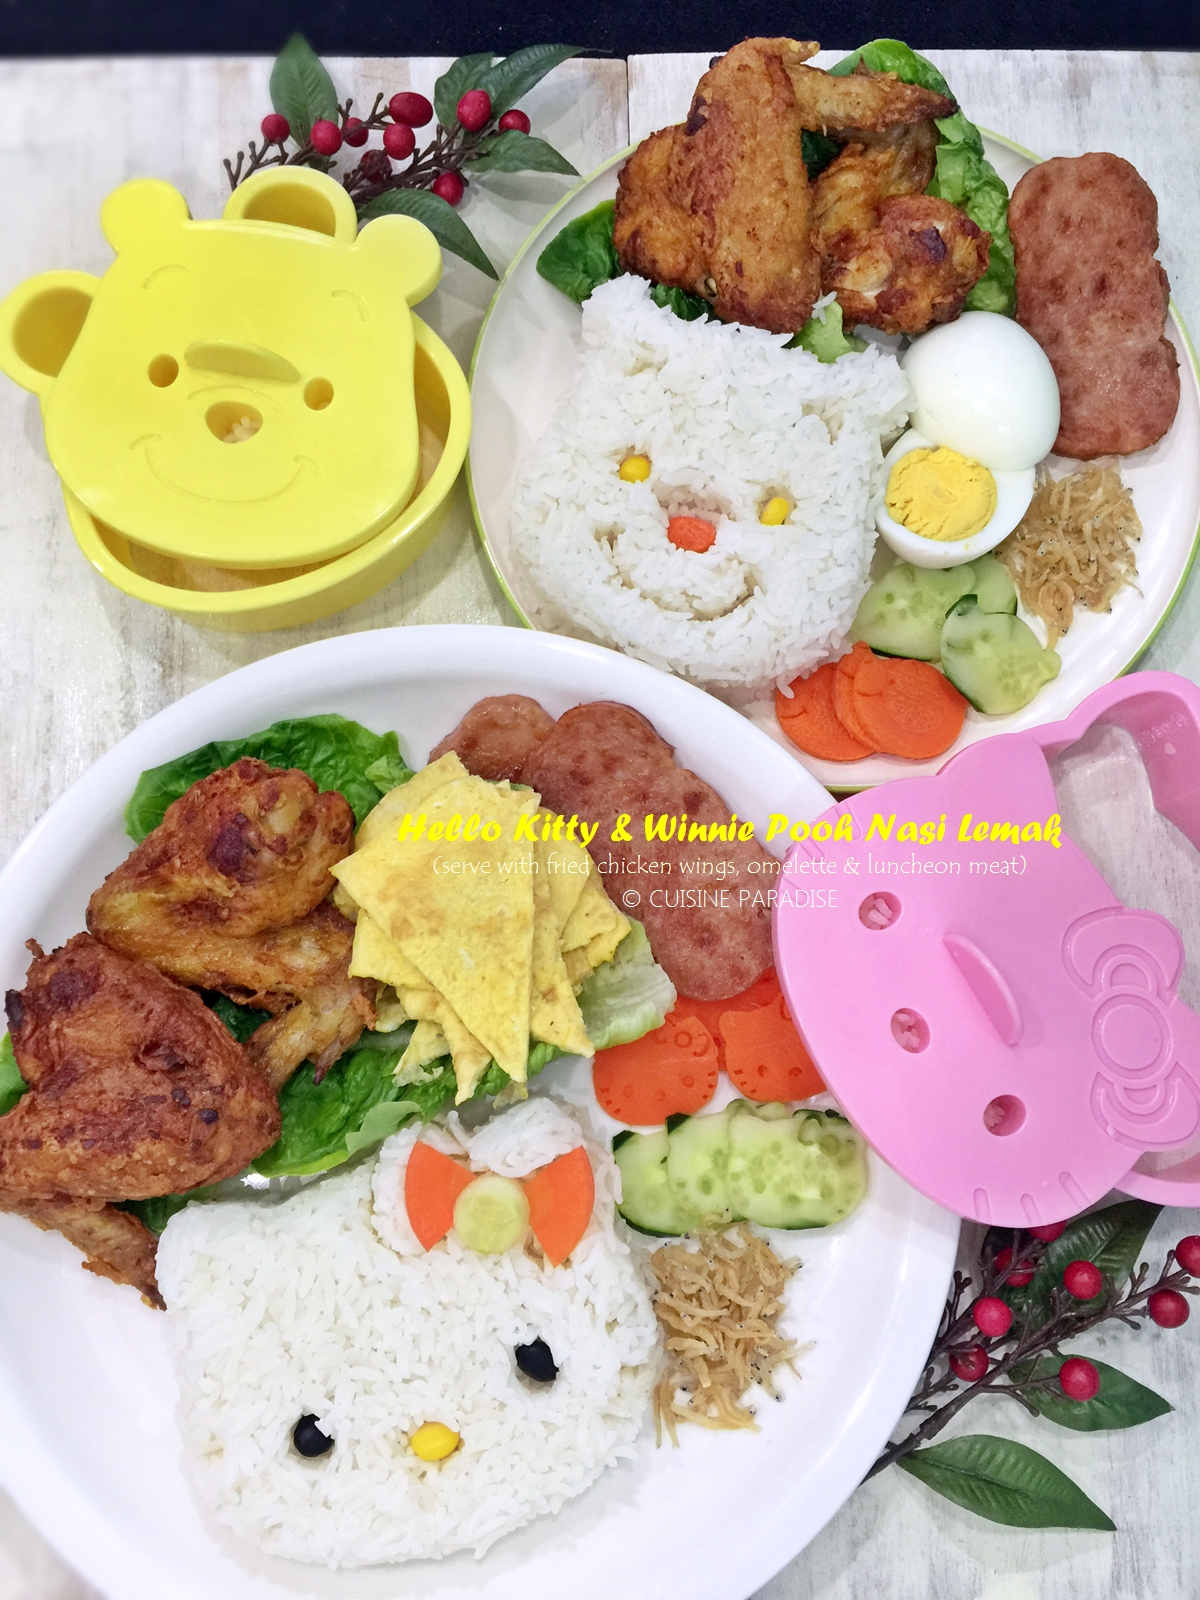 Cuisine paradise singapore food blog recipes reviews and travel recipes video hello kitty winnie pooh nasi lemak forumfinder Images